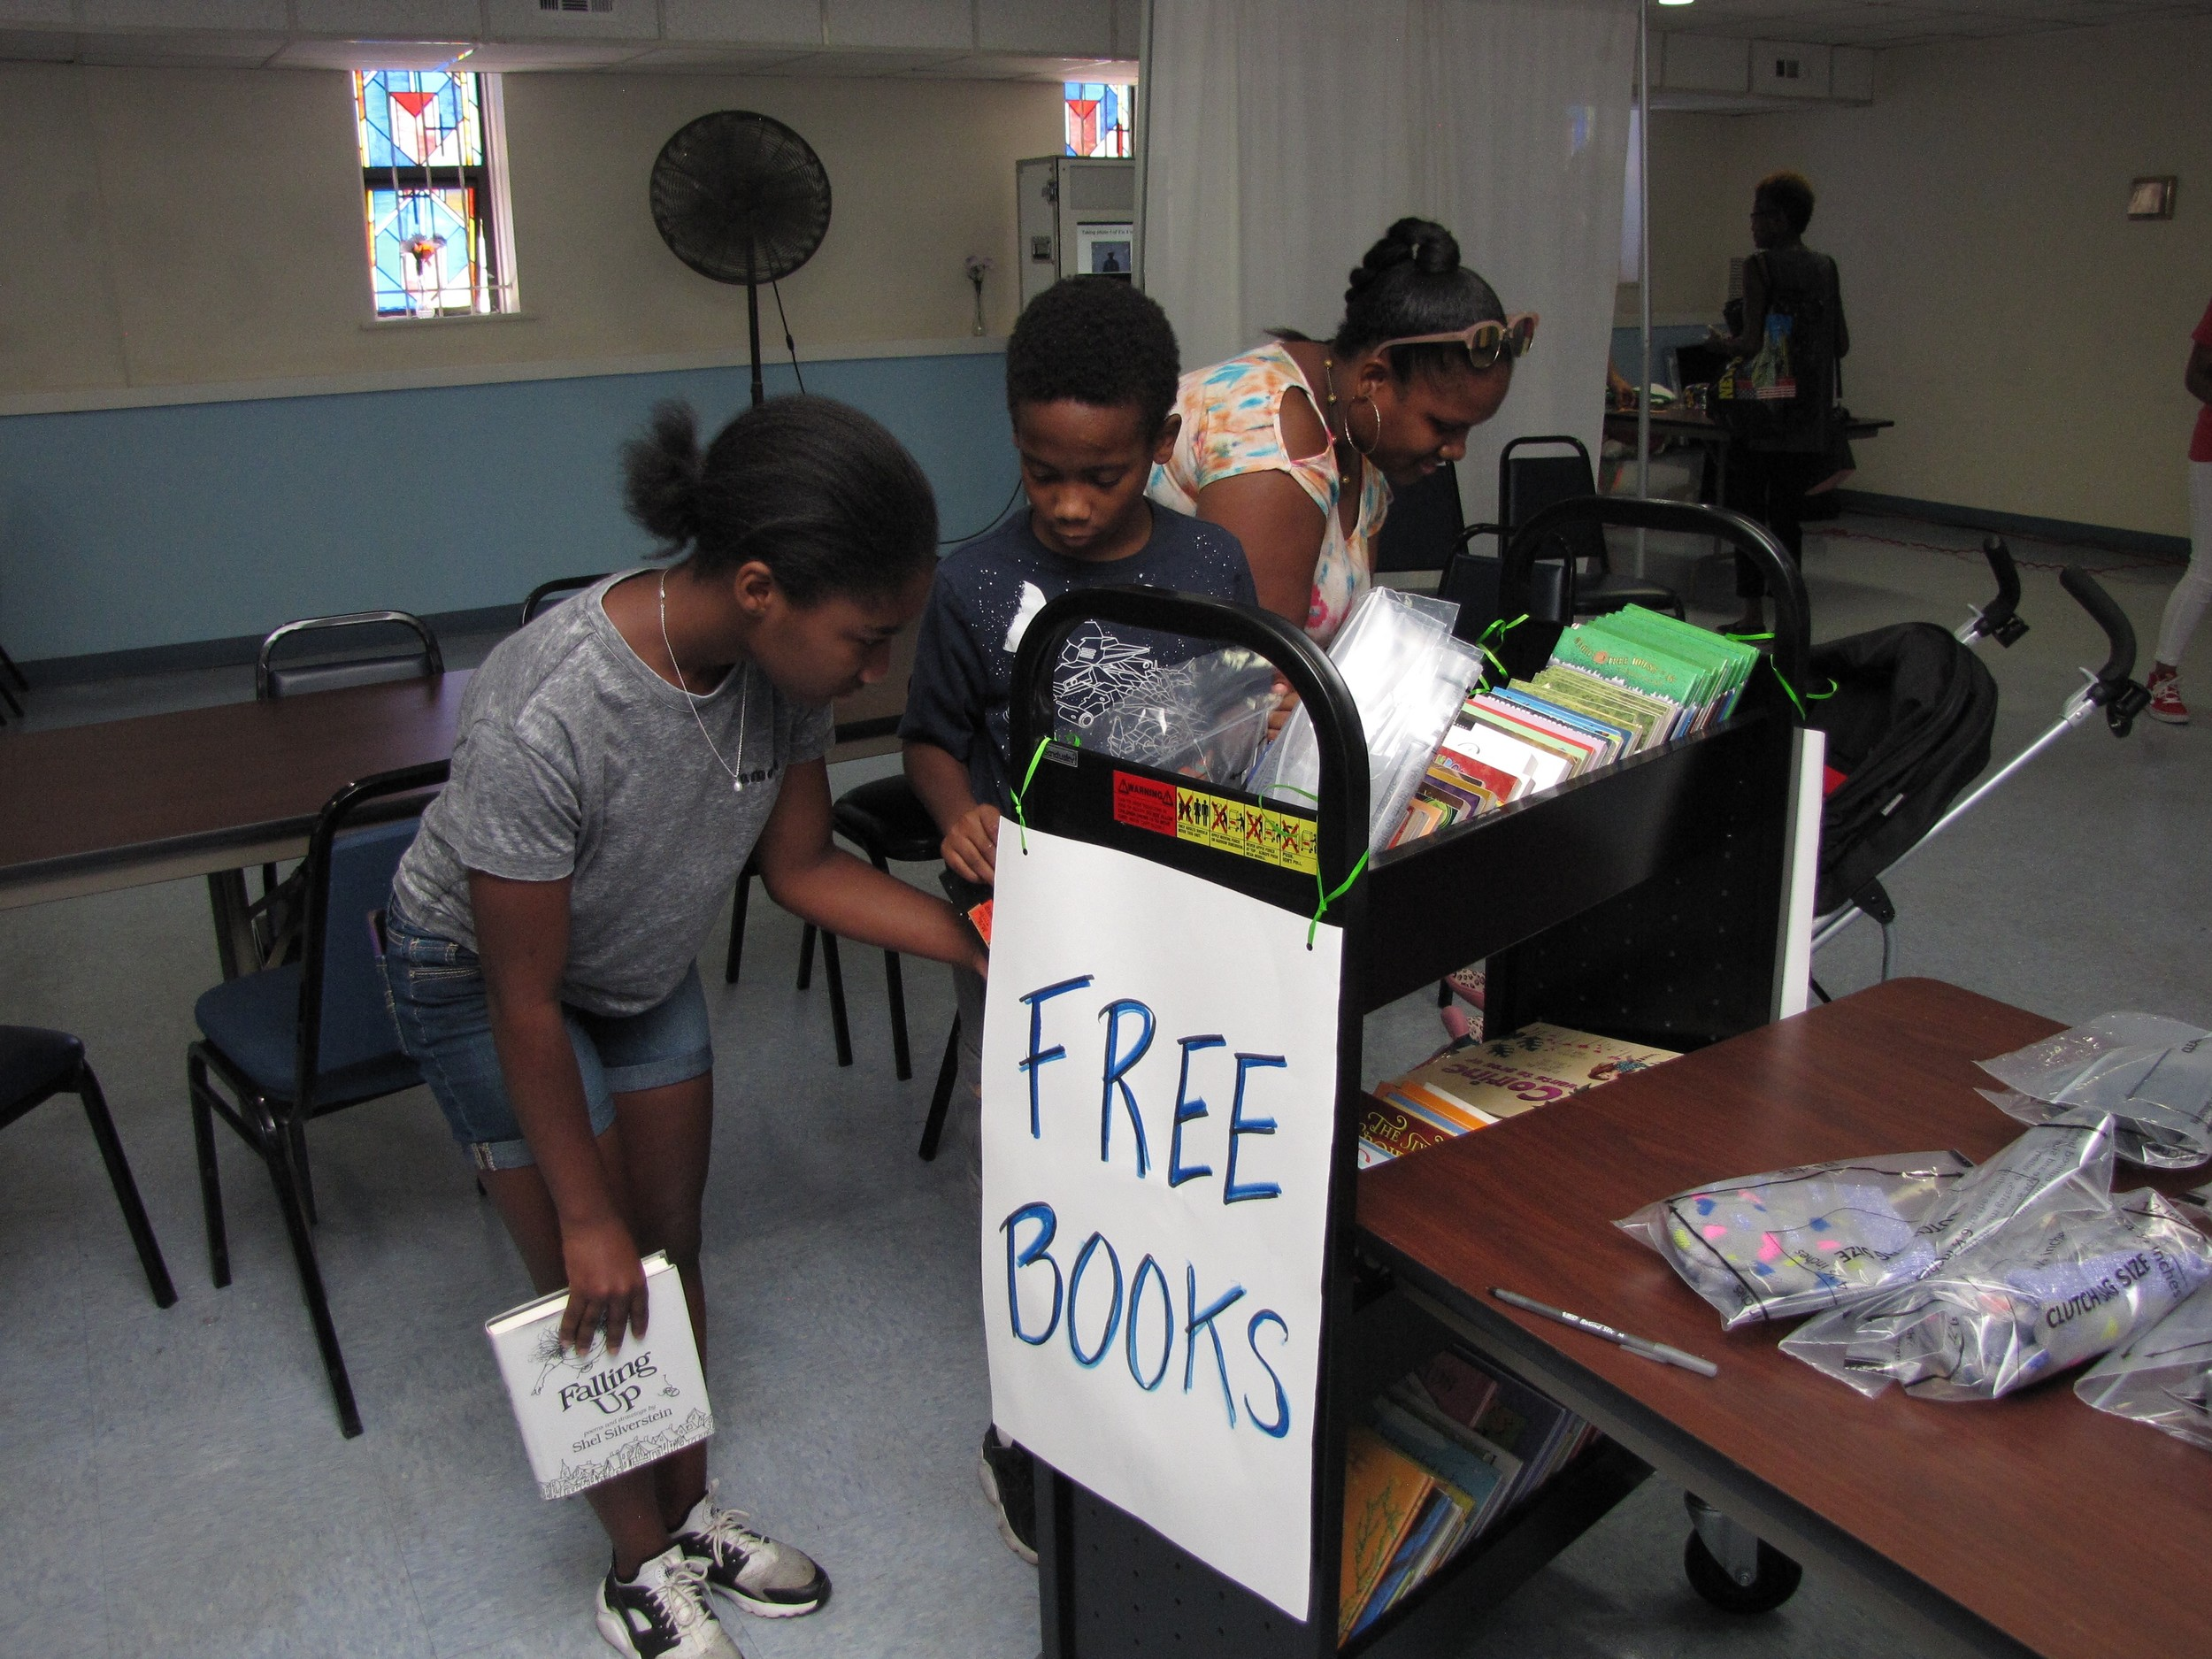 Kamille Thompson, right, browsed through the free books with her son, Dominic Solomon, 10, center, and her niece, Niyah Thompson, 13.